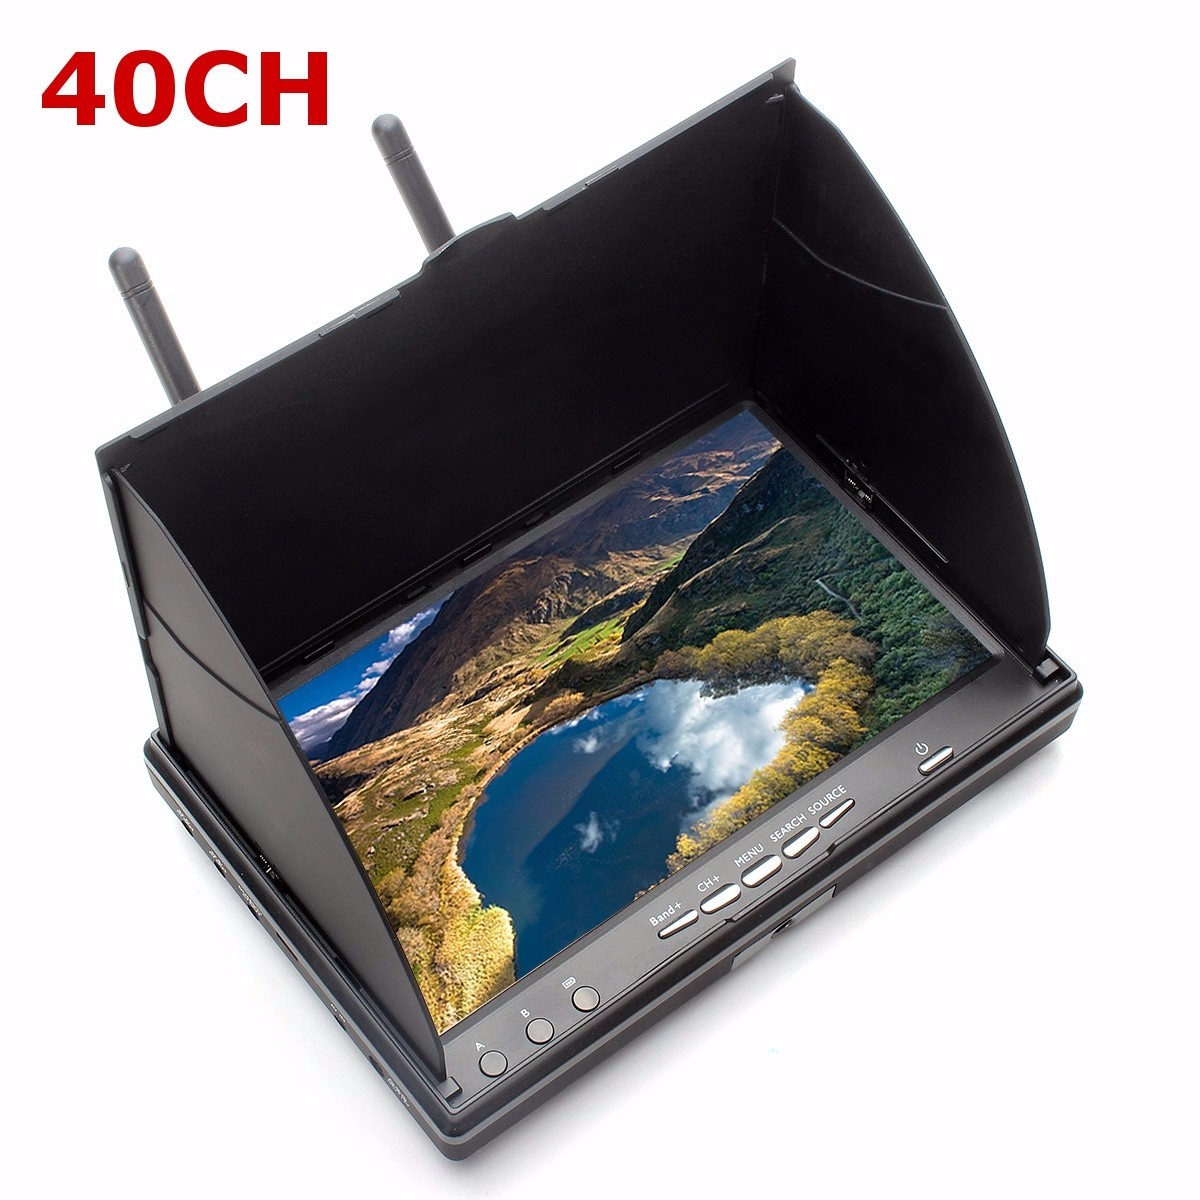 Eachine LCD5802S 5802 40CH Raceband 5.8G 7 Inch Diversity Receiver Monitor with Build-in